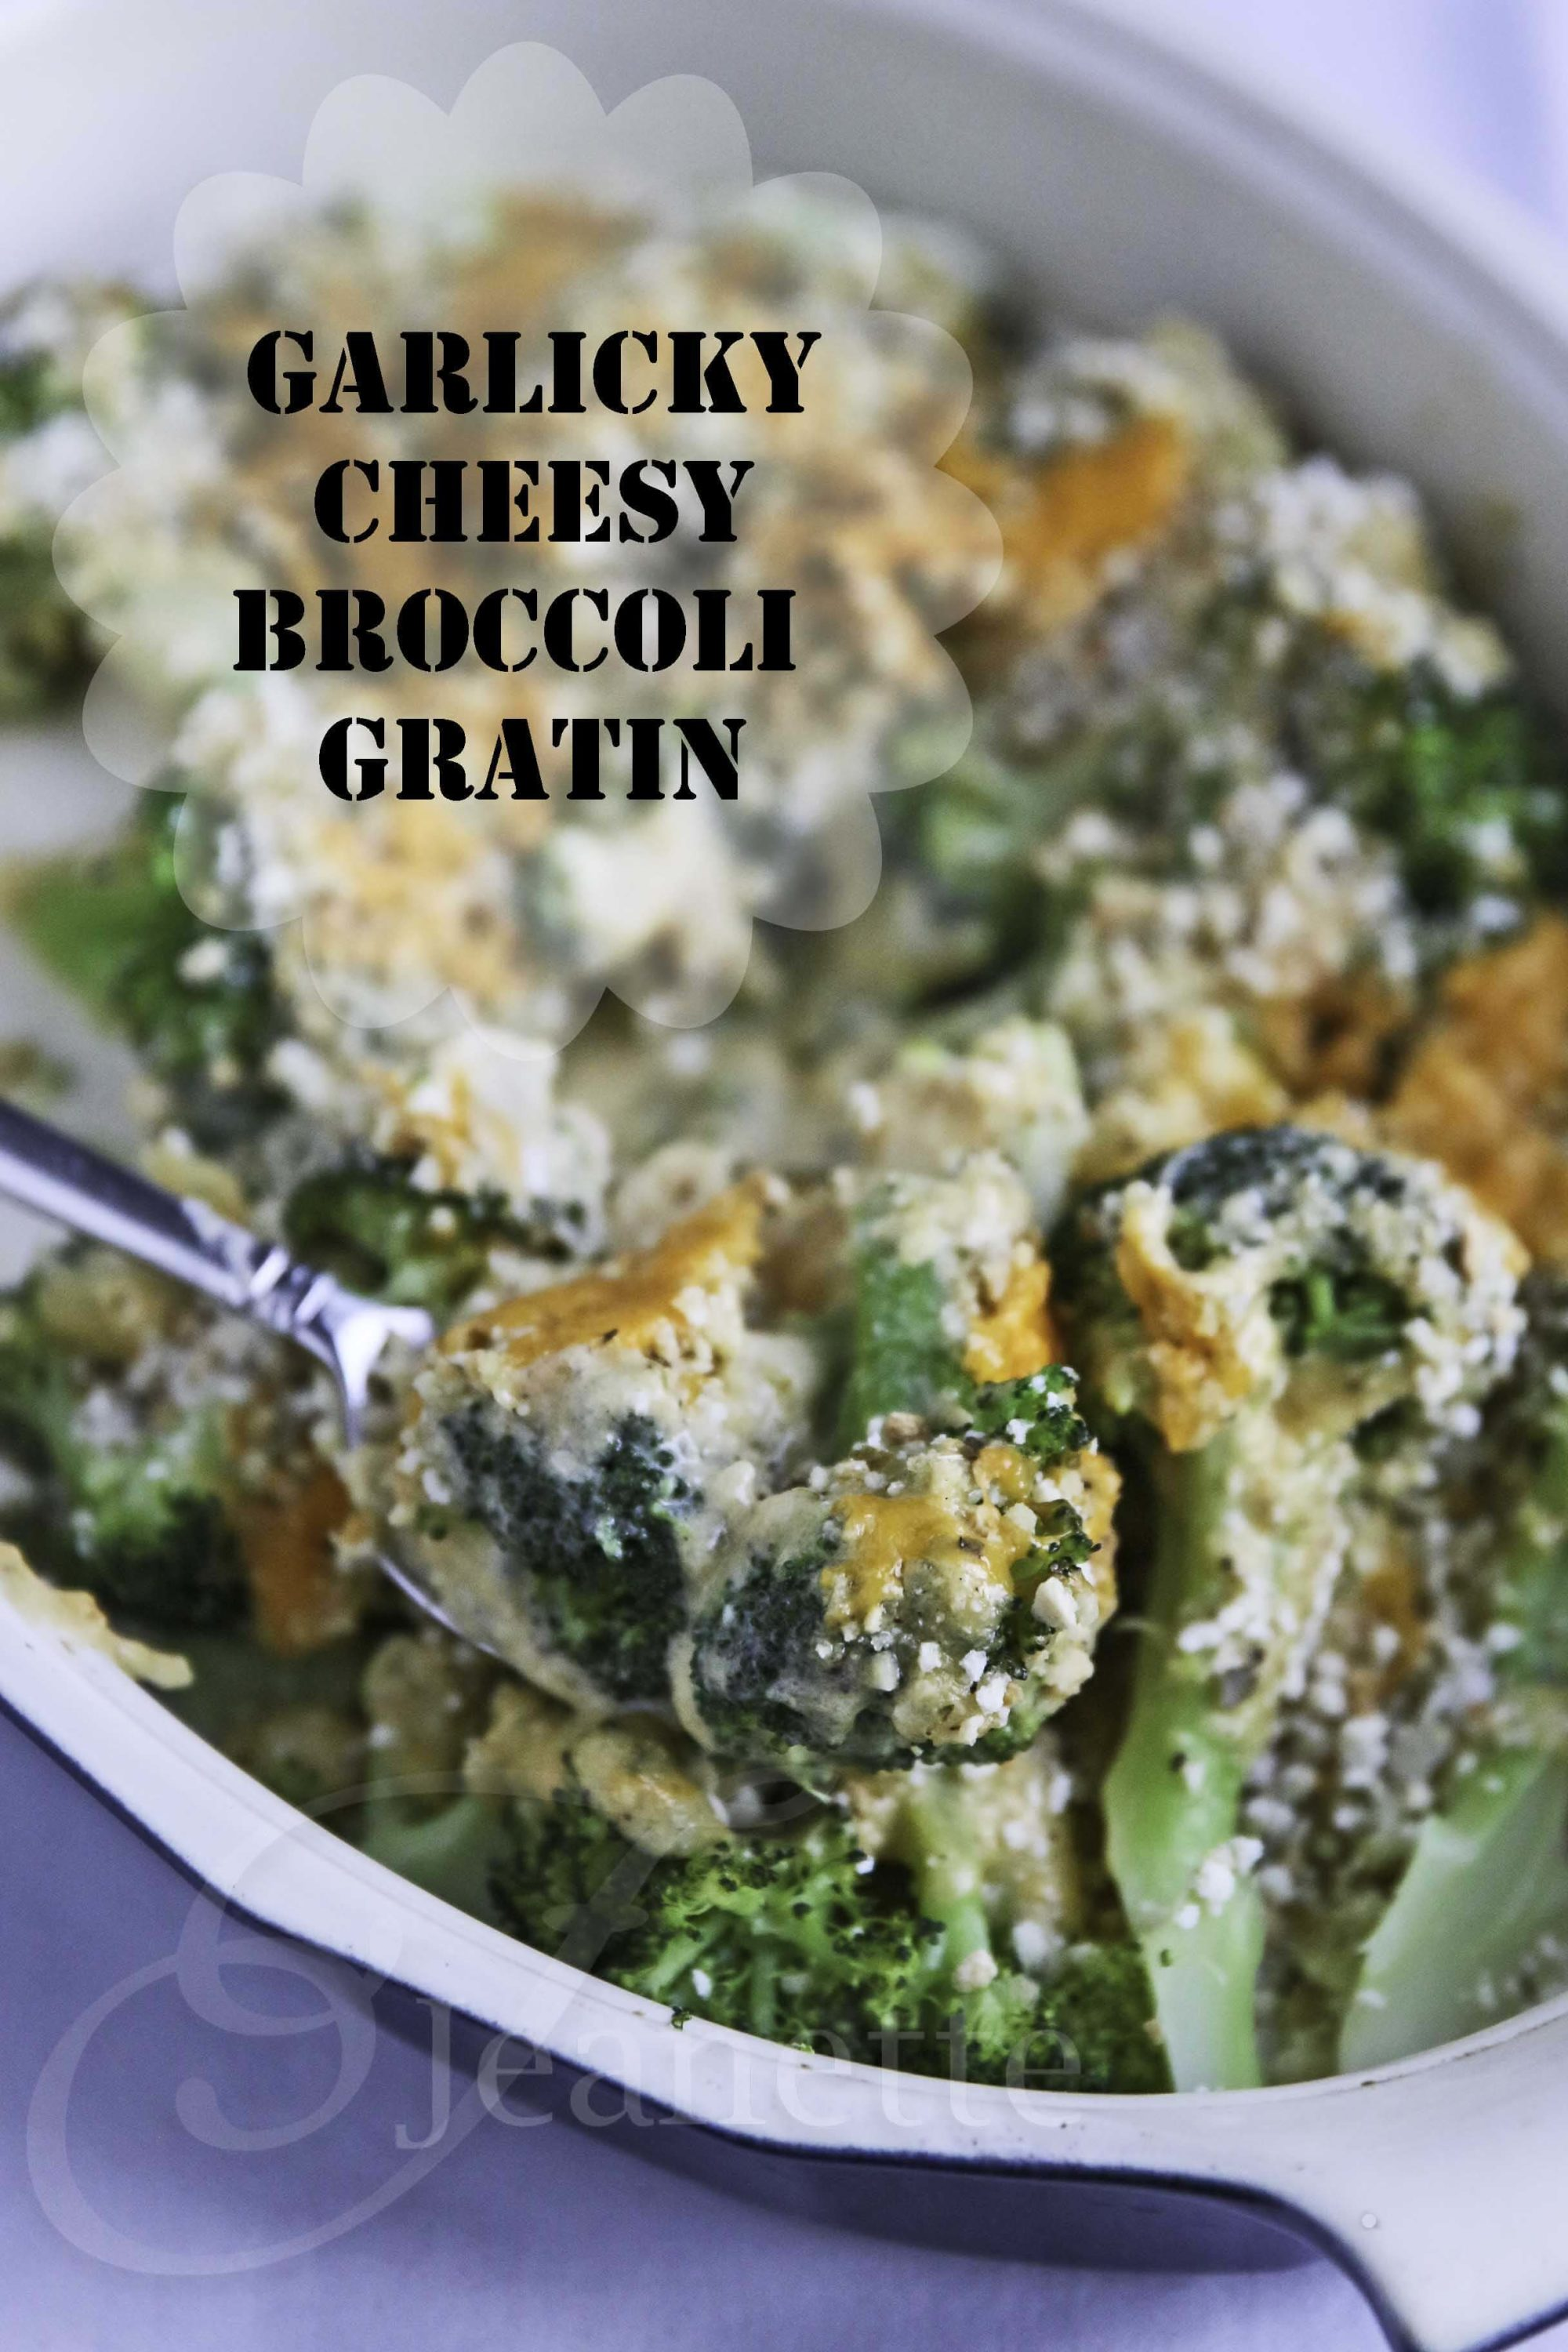 Garlicky Cheesy Broccoli Gratin © Jeanette's Healthy Living